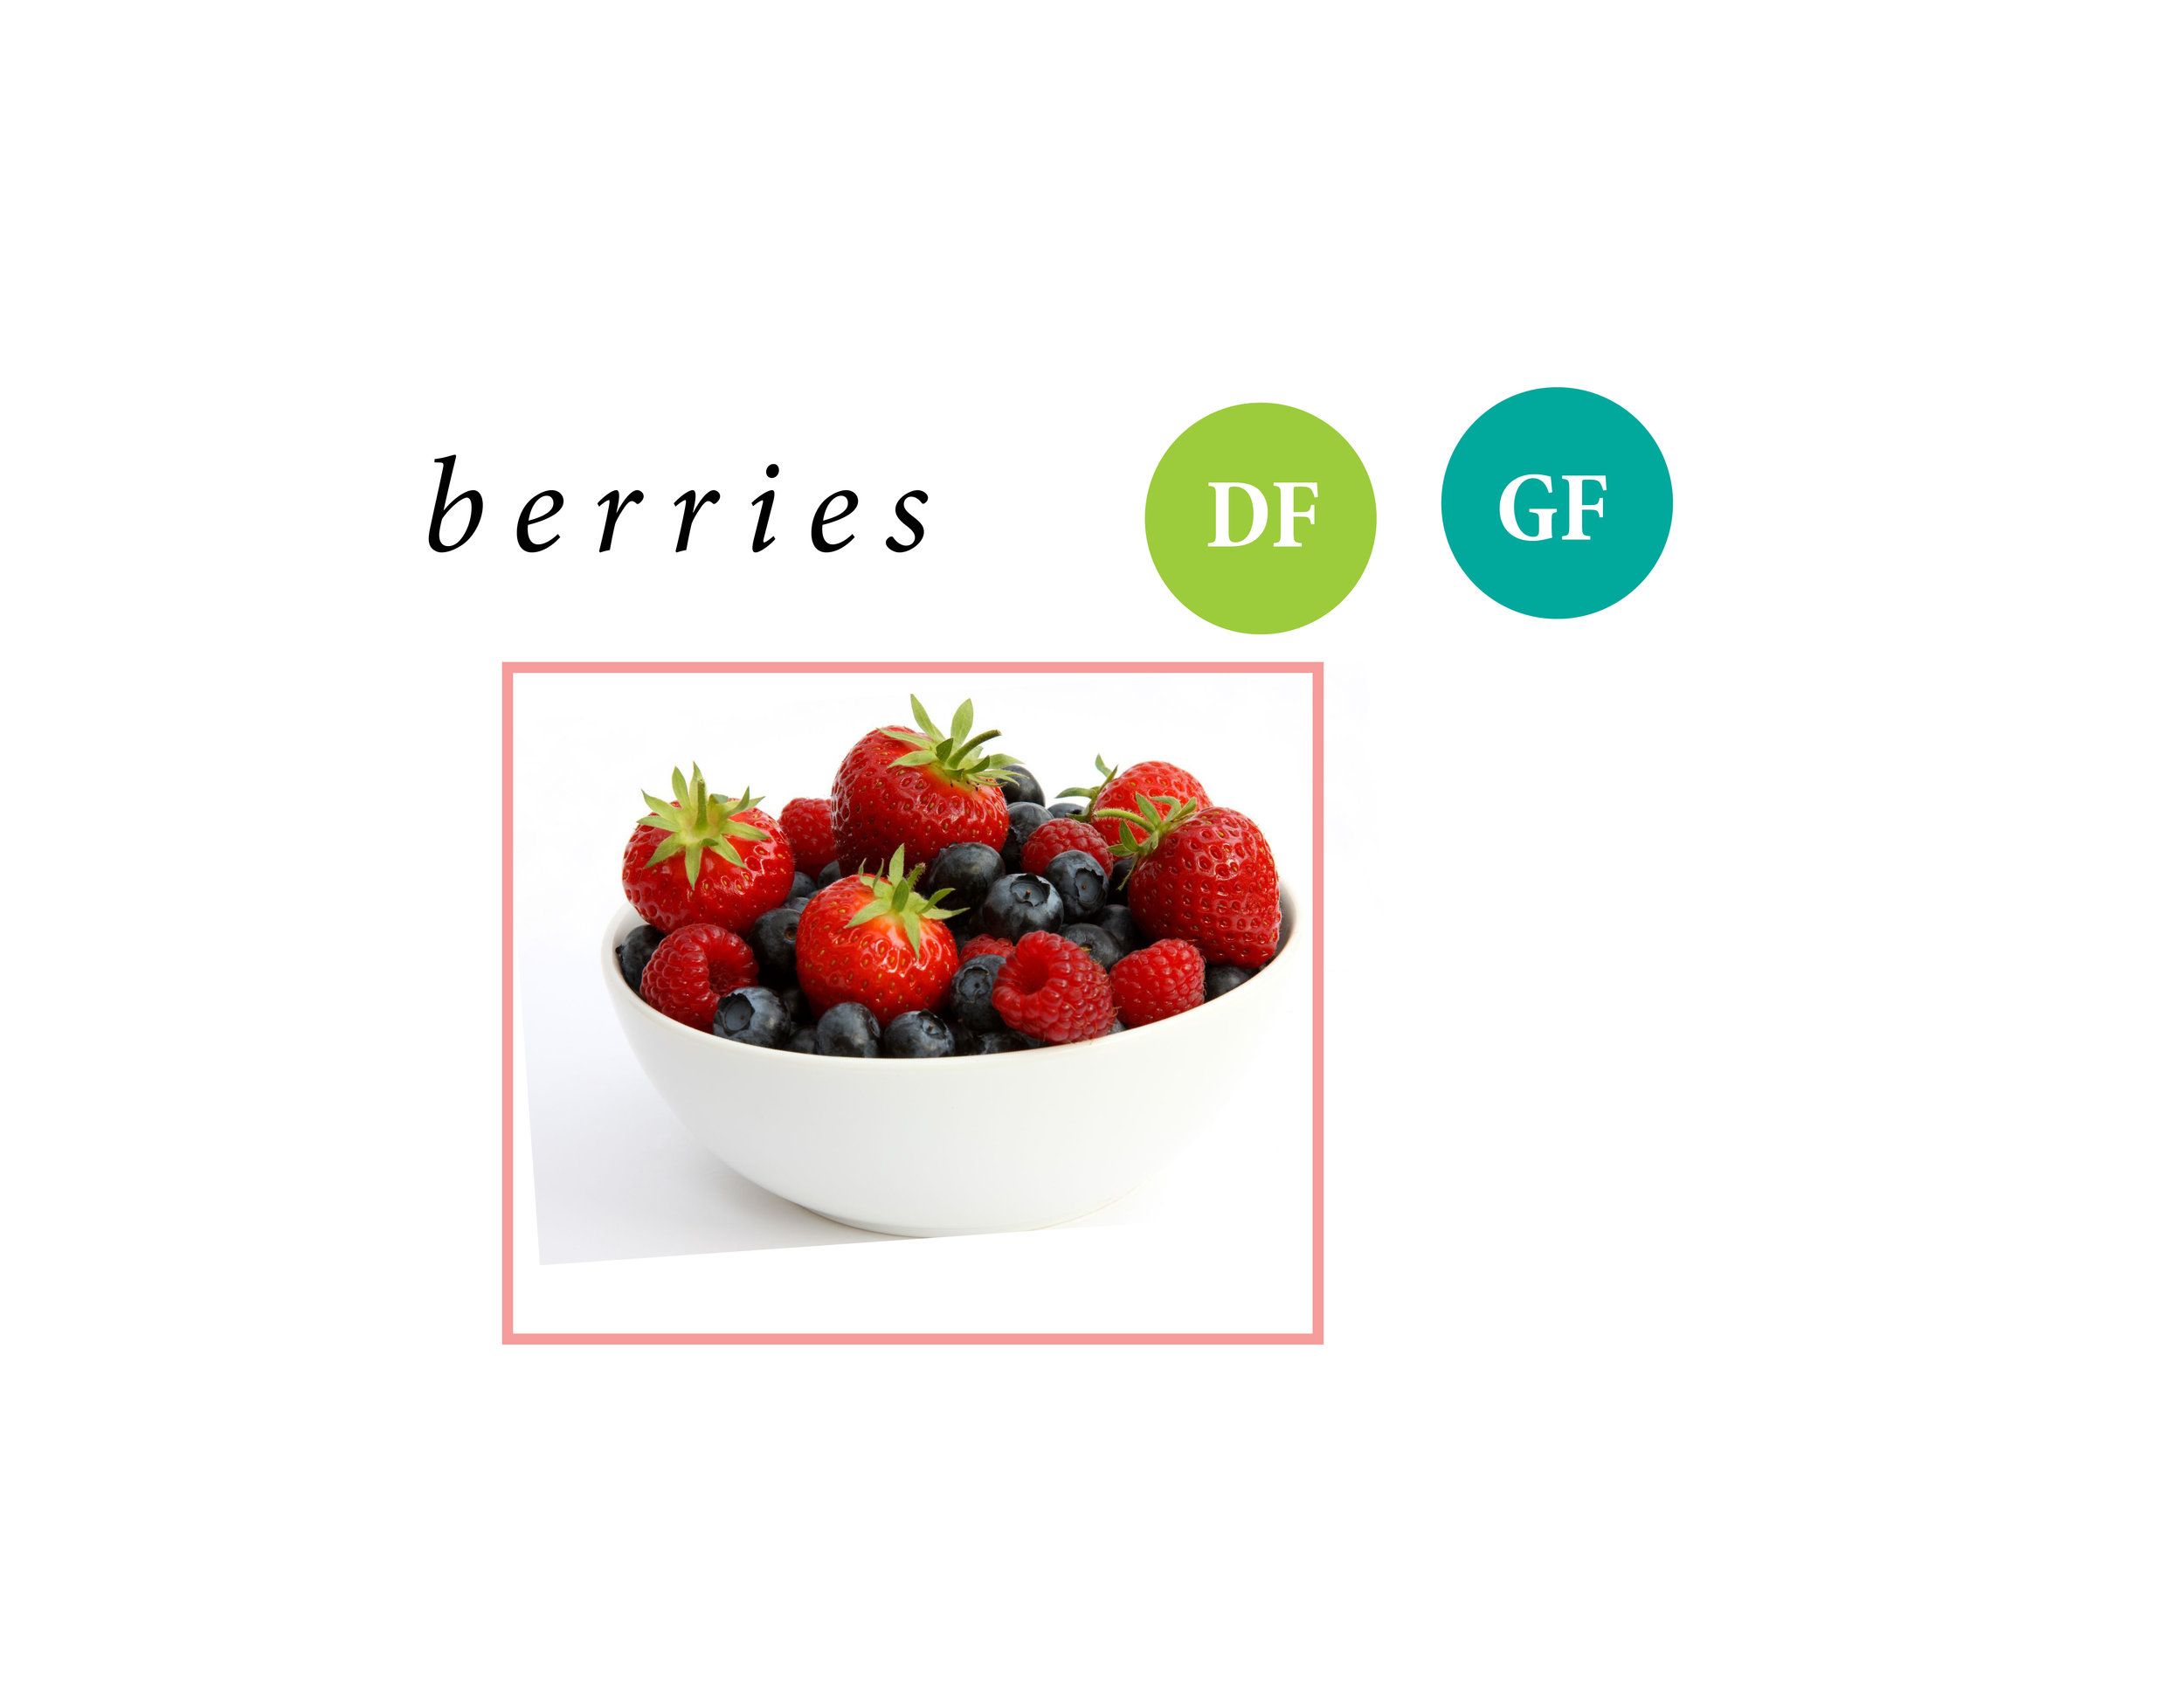 Berries are just always a good idea. I get that sugary sensation that I just have to have something sweet. This is my go to. They're easy to package, take on the go, throw in a smoothie or some granola (like the Purely Elizabeth), or freeze and add to your water on a hot day. It's just always good to be stocked up on some berries, especially in the spring + summer season.